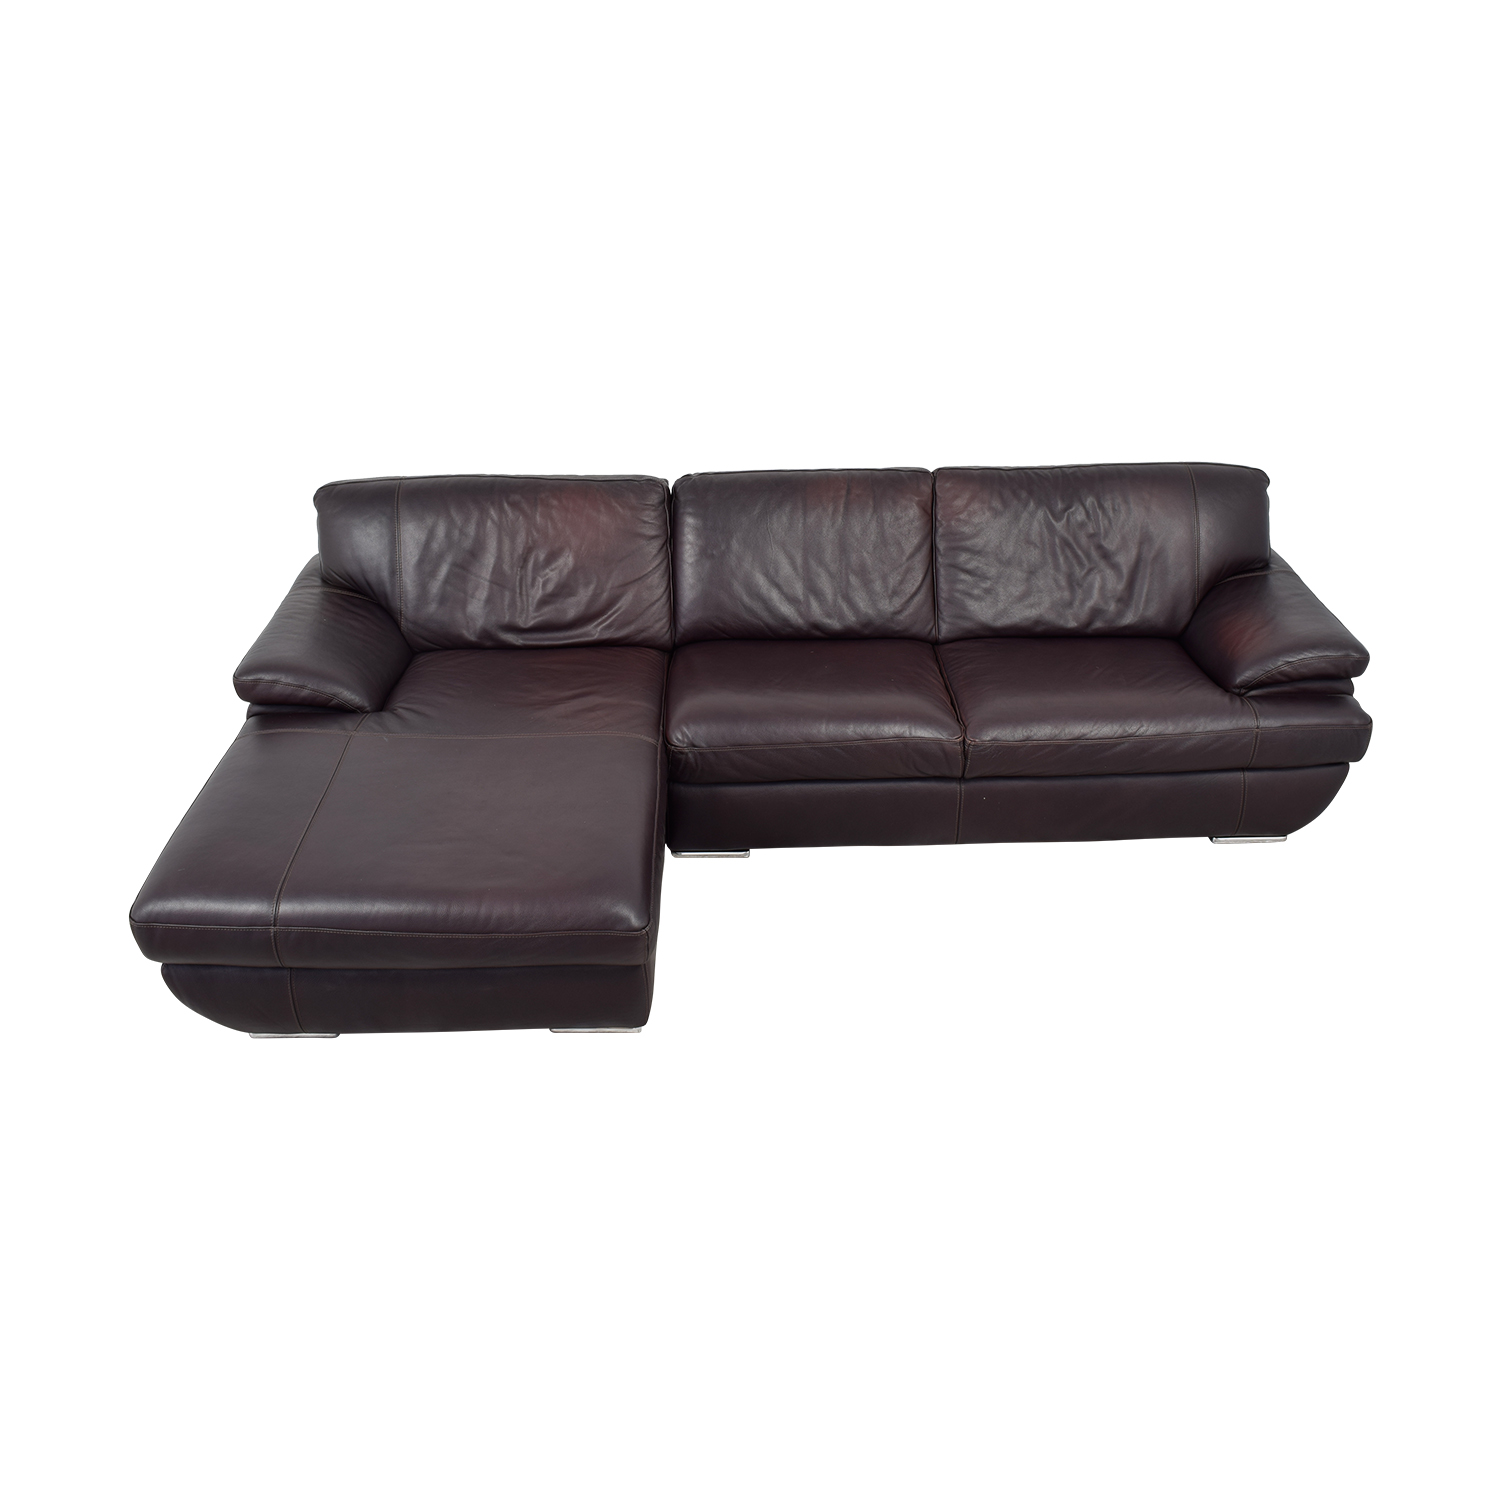 Chateau D'Ax Brown Leather Left Chaise Sectional Chateau D'Ax